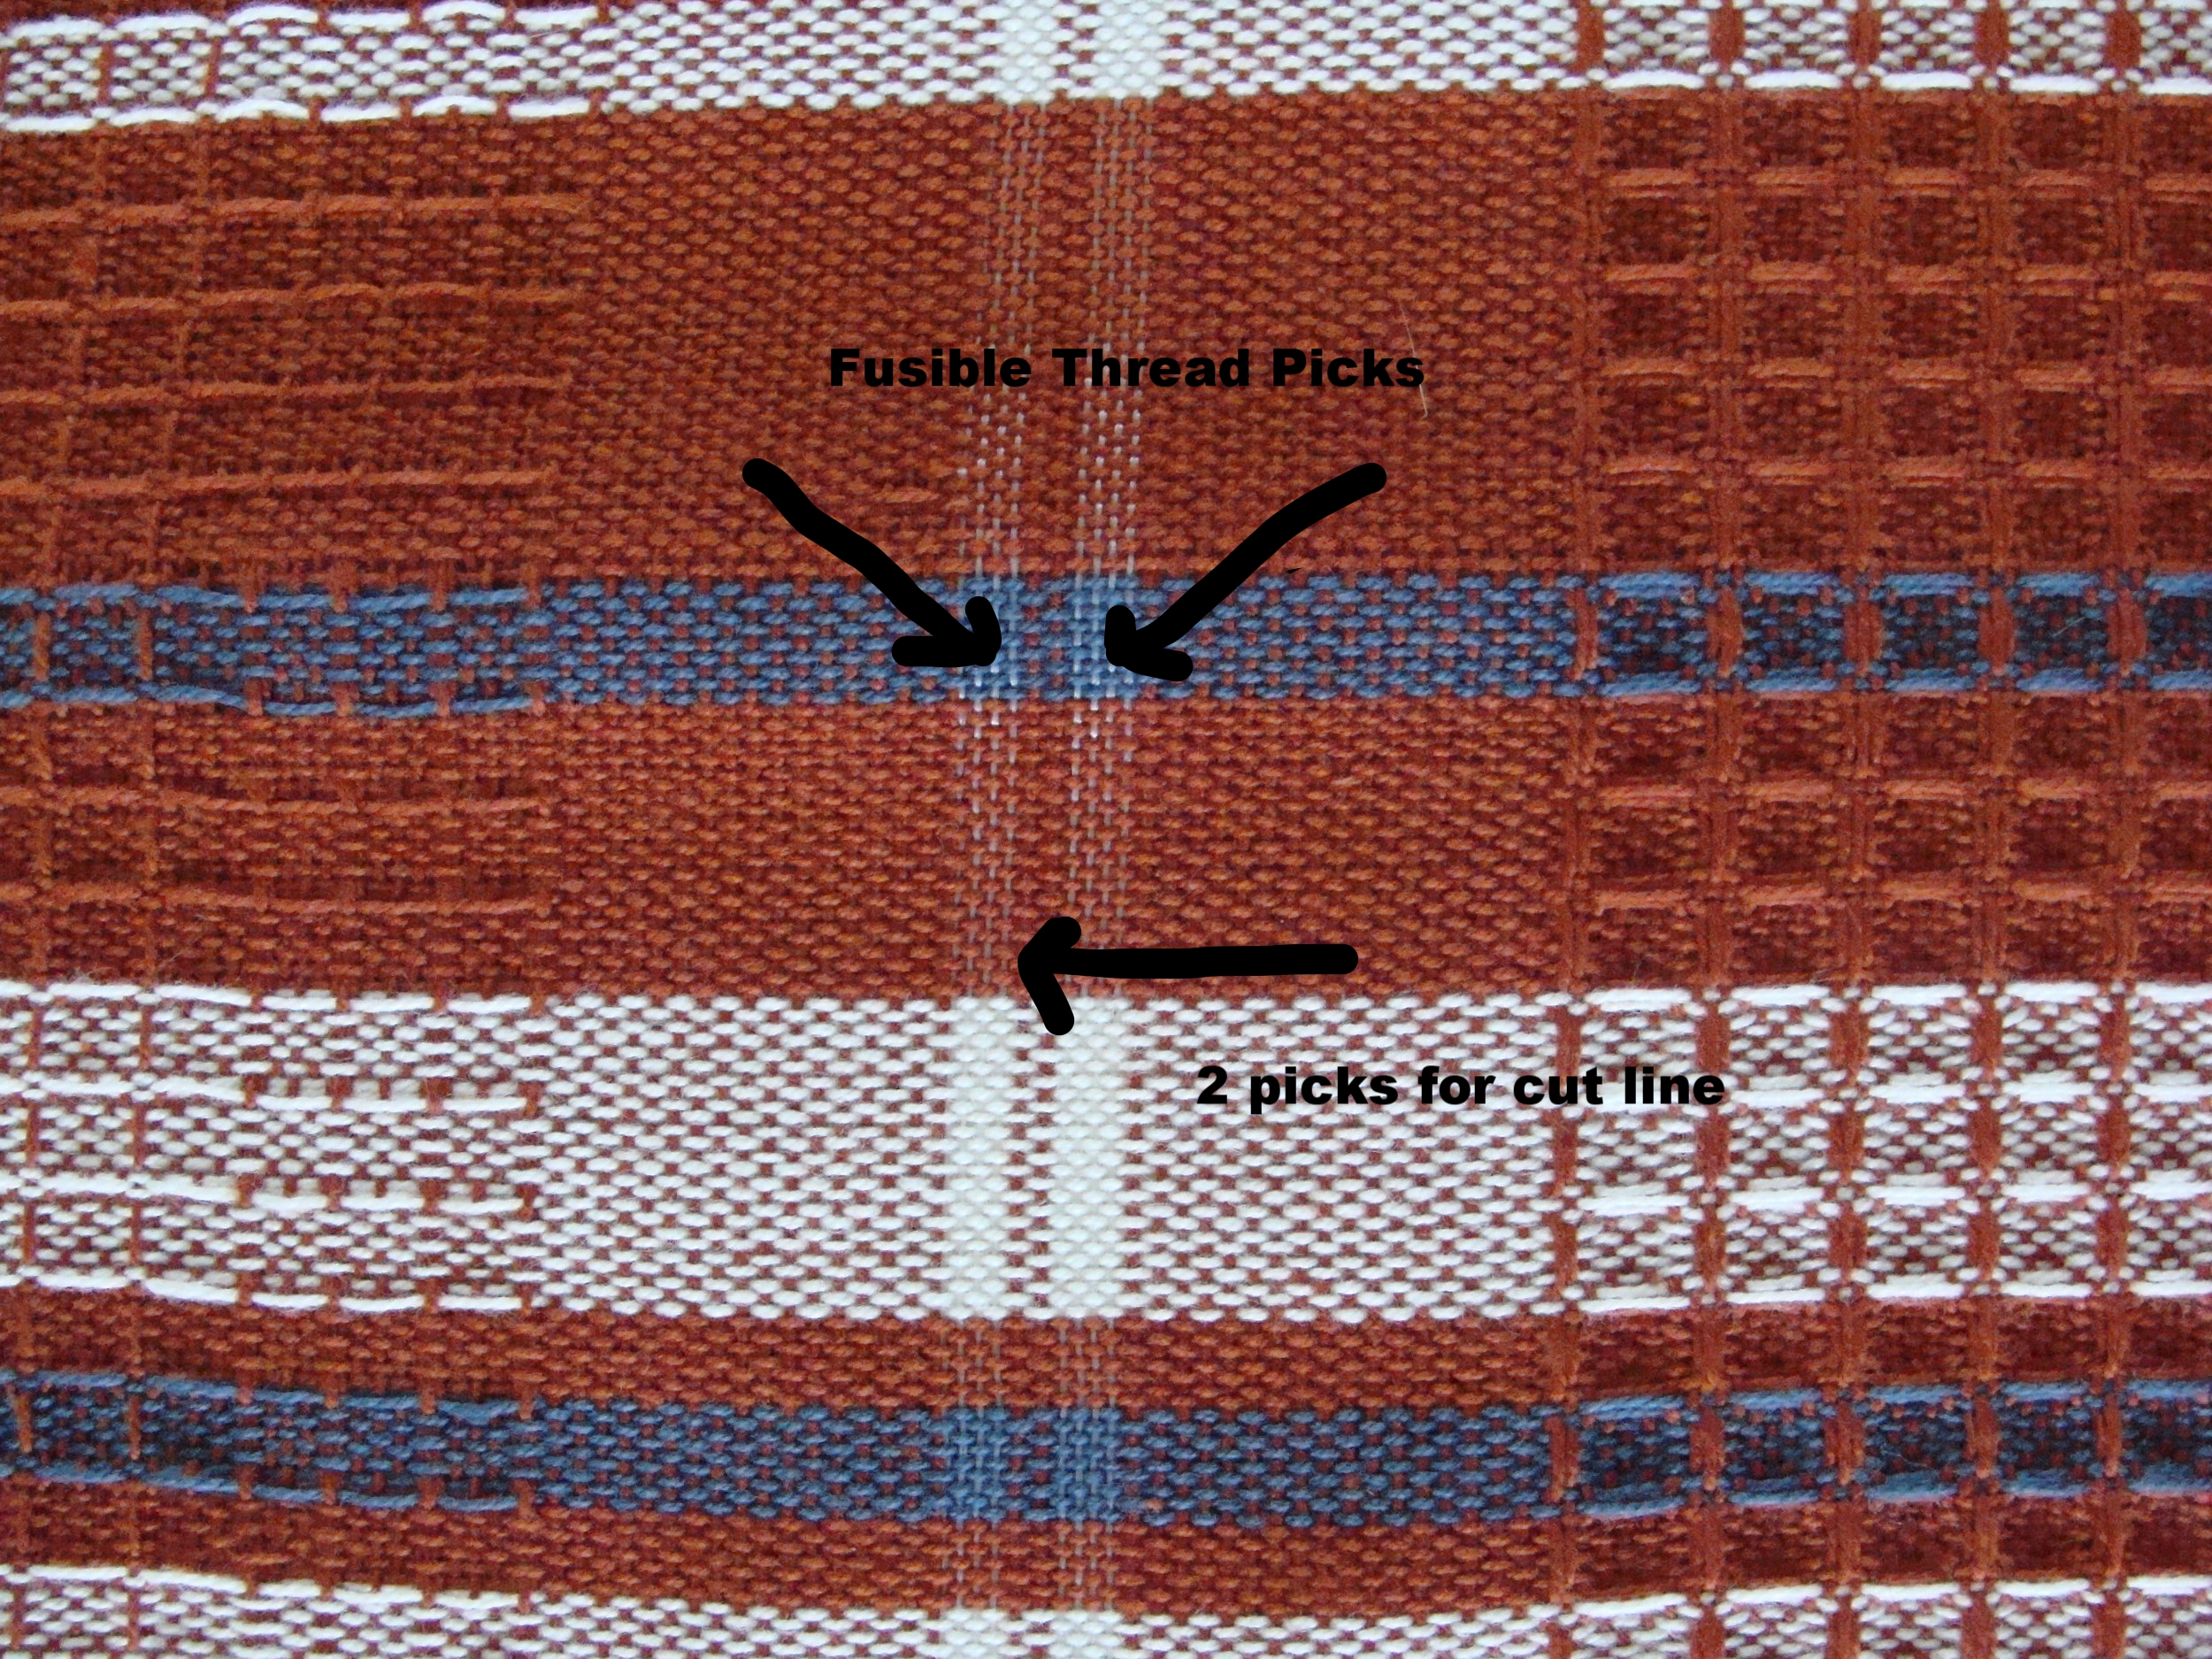 waffle weave towels - hemming with fusible thread